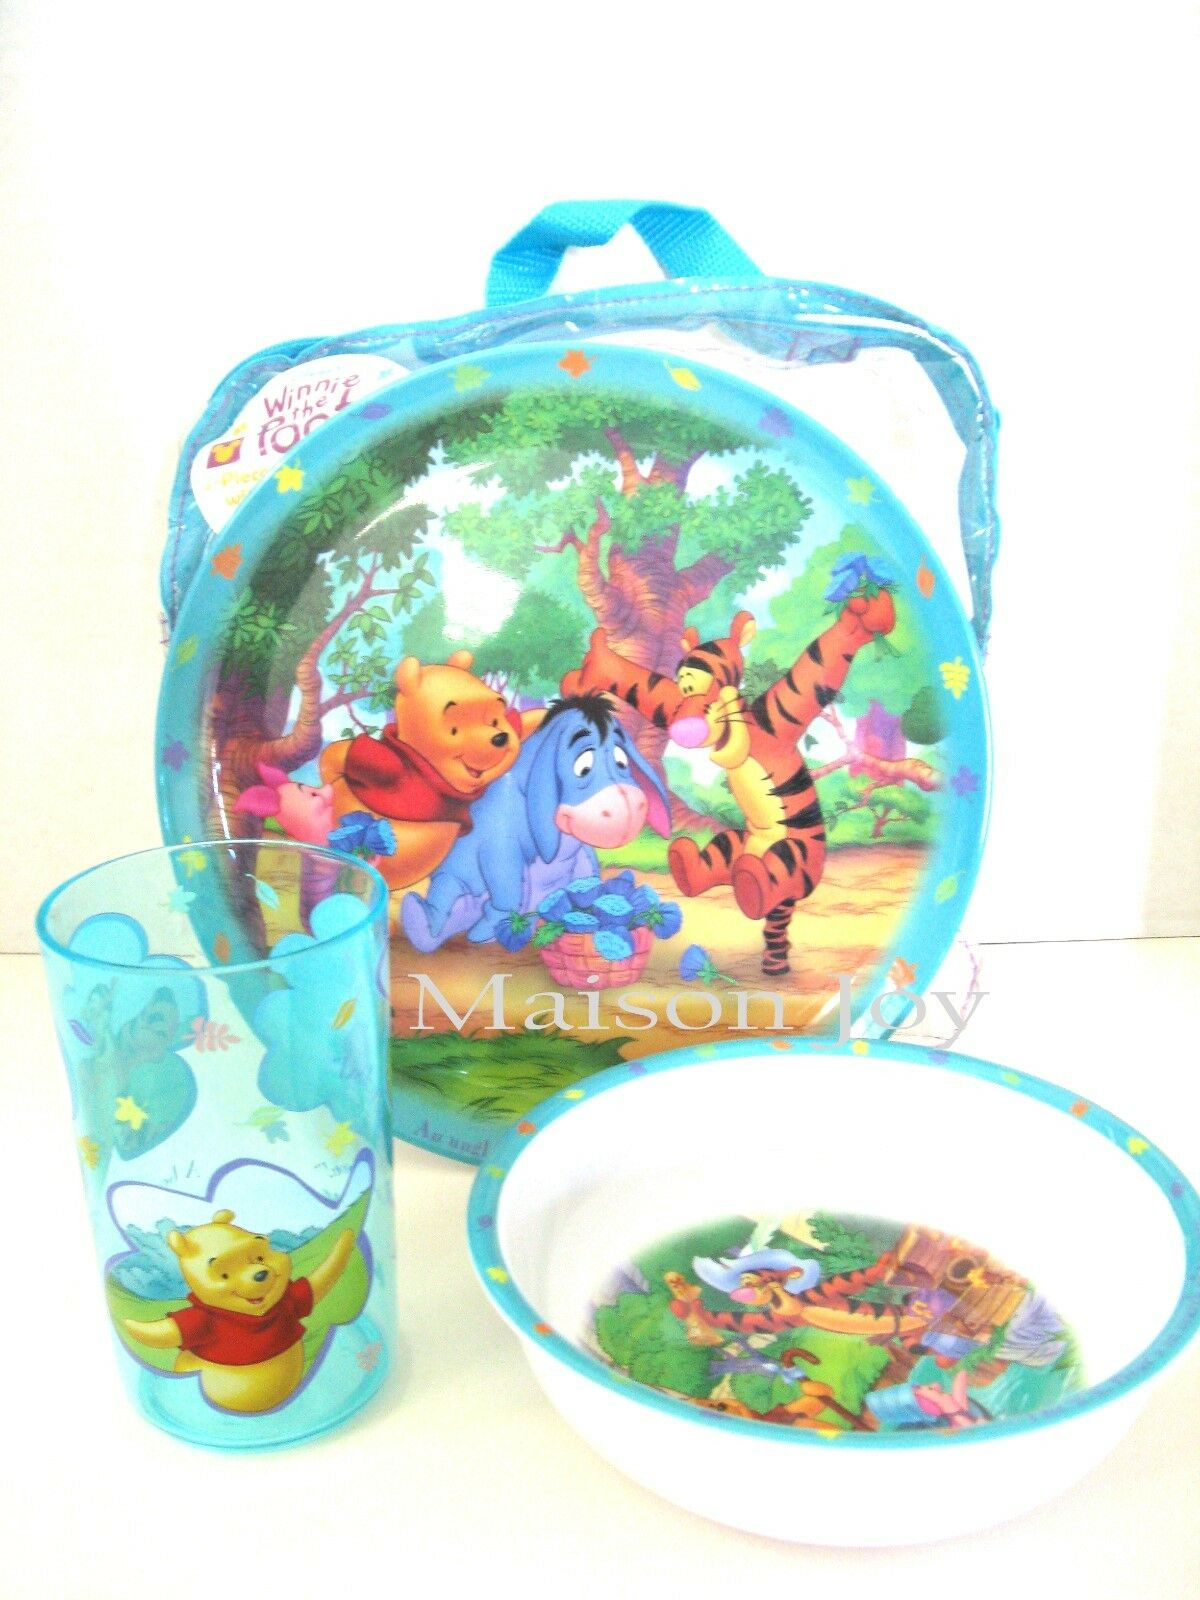 Disney Winnie Pooh & Friends 3pc Kids Dining Dinnerware Set Plate